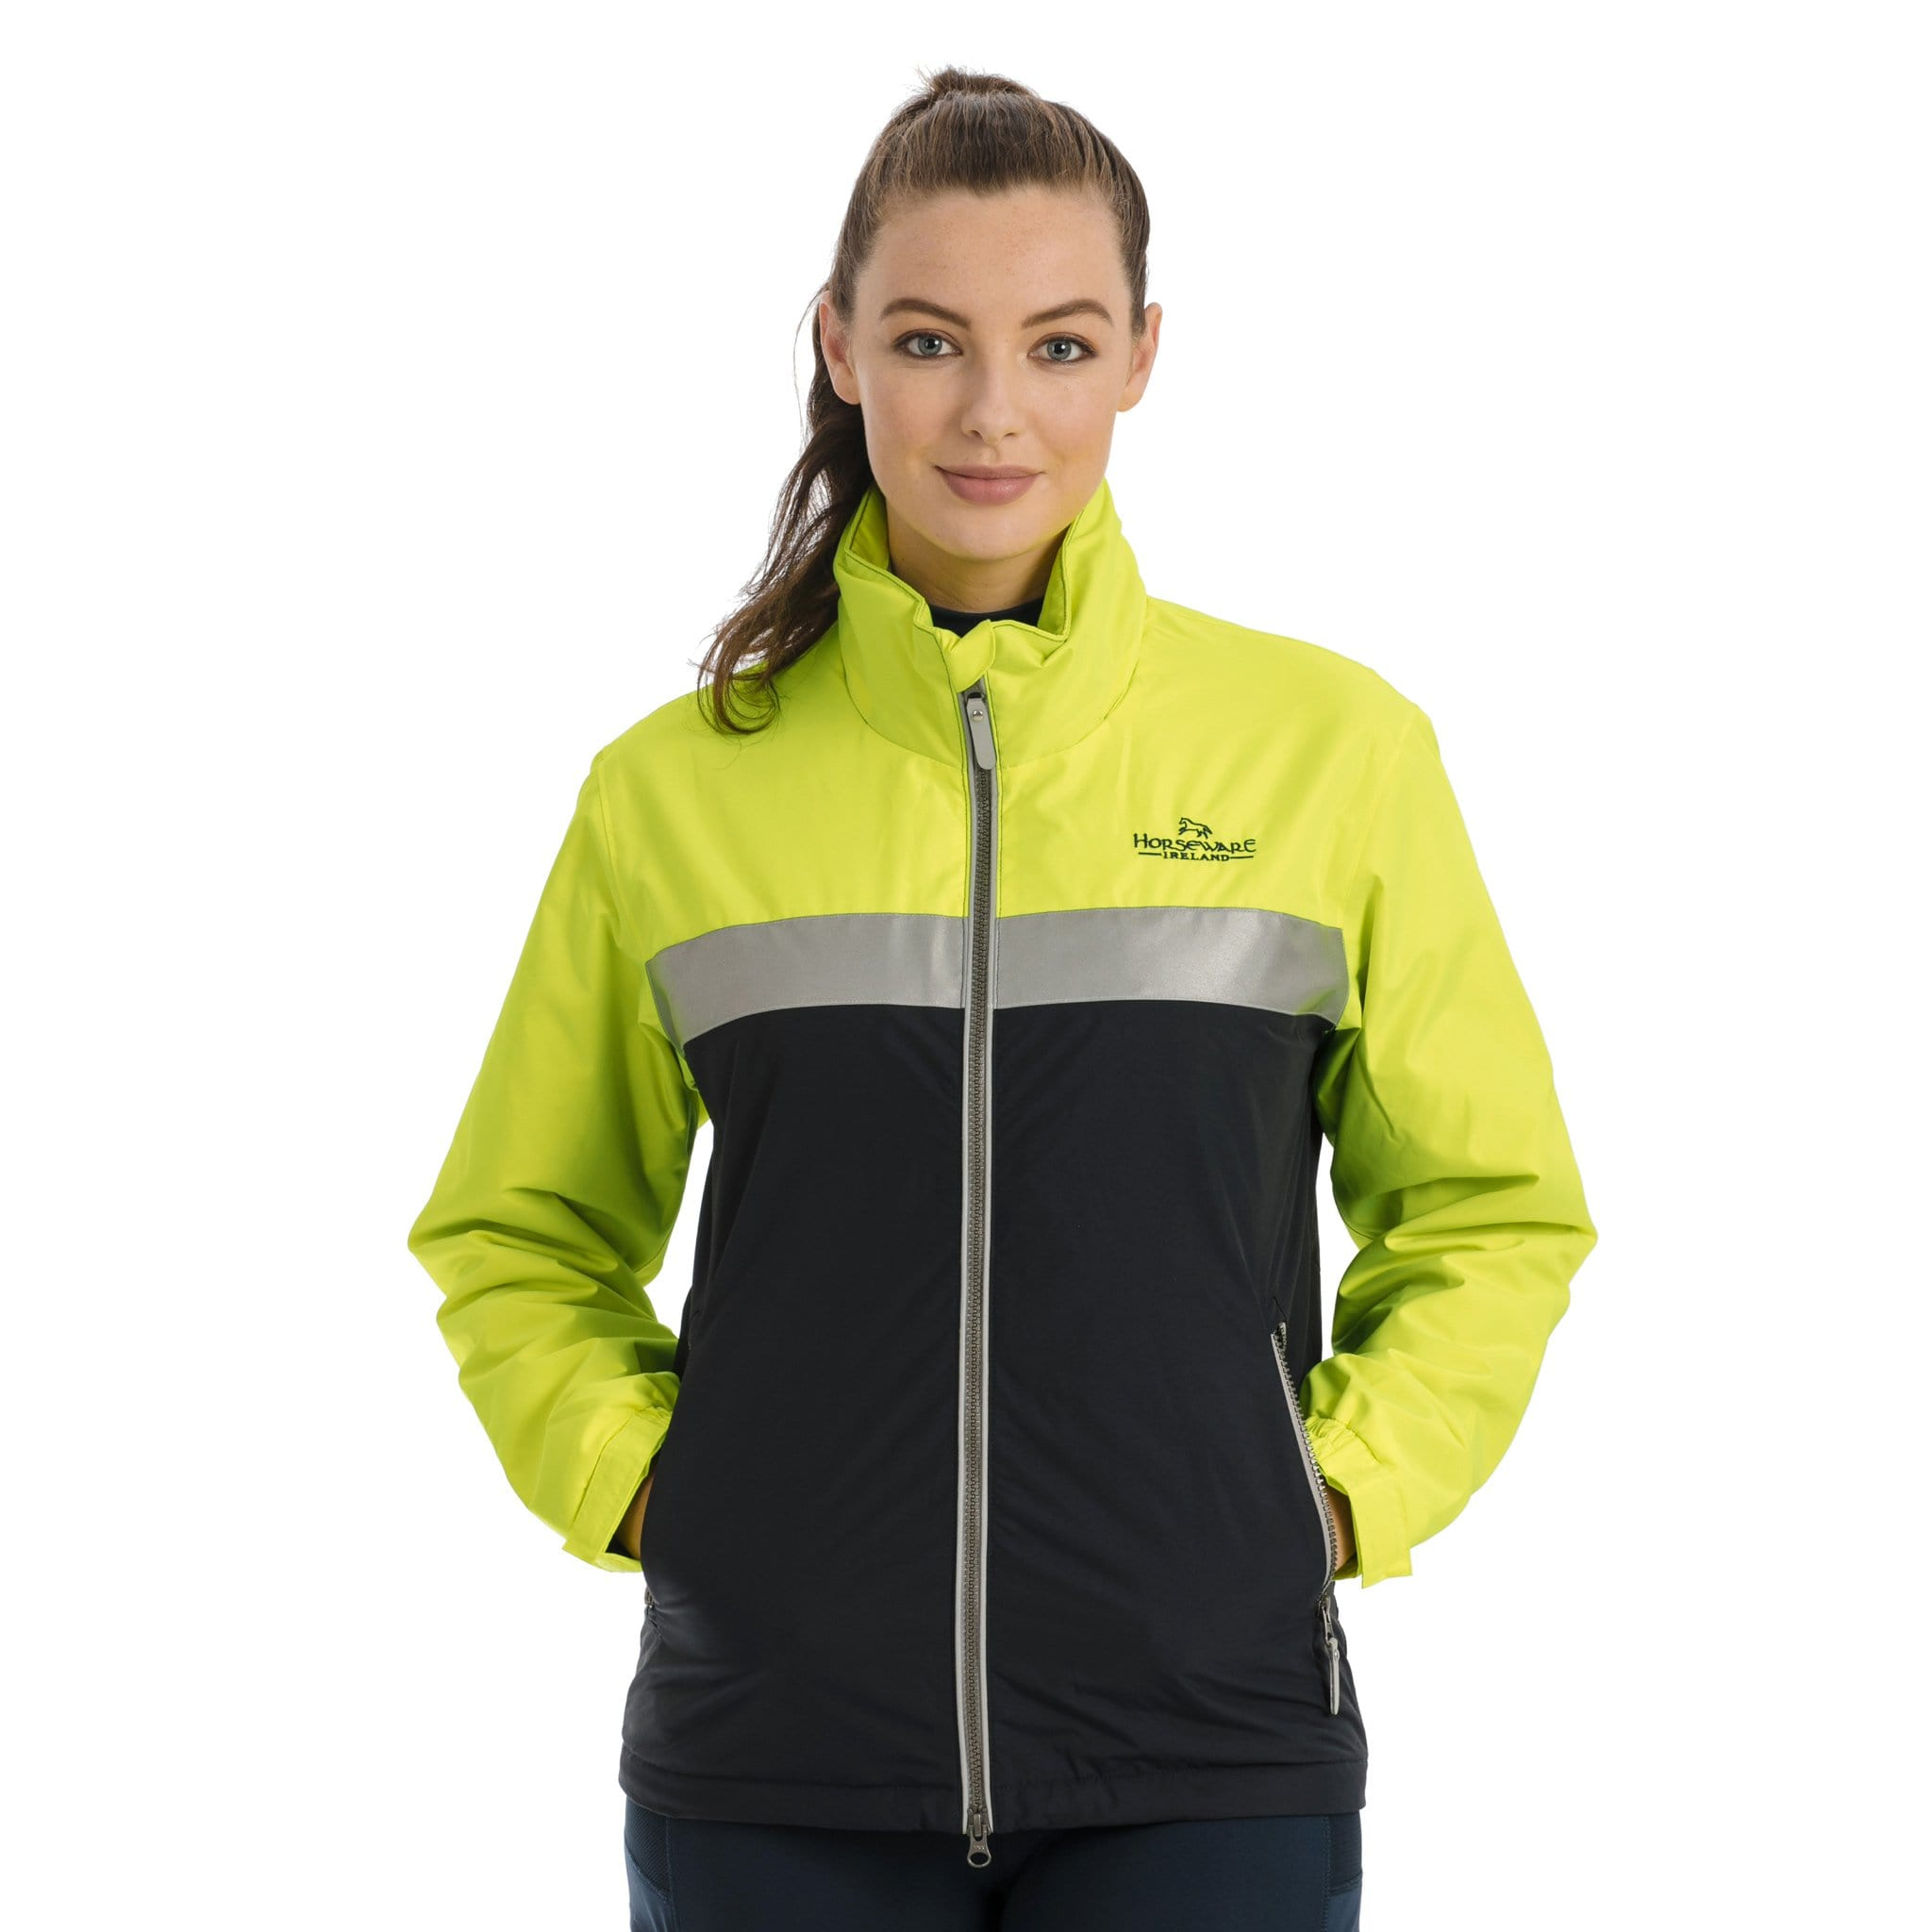 Horseware Corrib Neon Jacket CBHC02 On Female Model Front Hands In Pockets